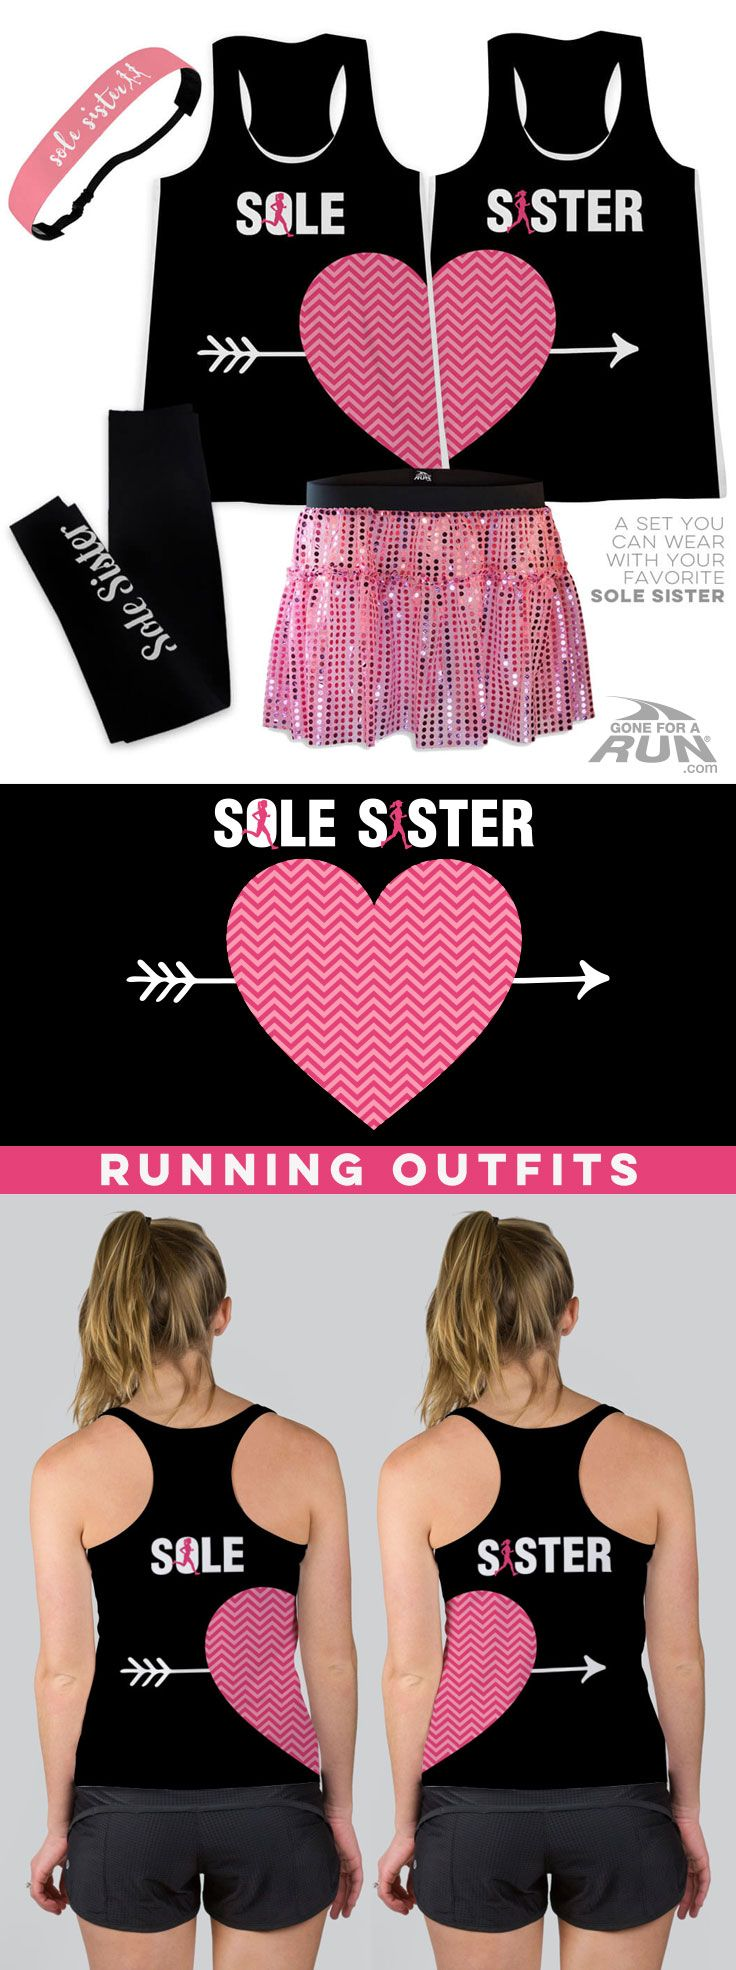 Sole Sisters inspire each other so run together with coordinating running outfits that form a heart when worn together. This set consists of two tank tops.